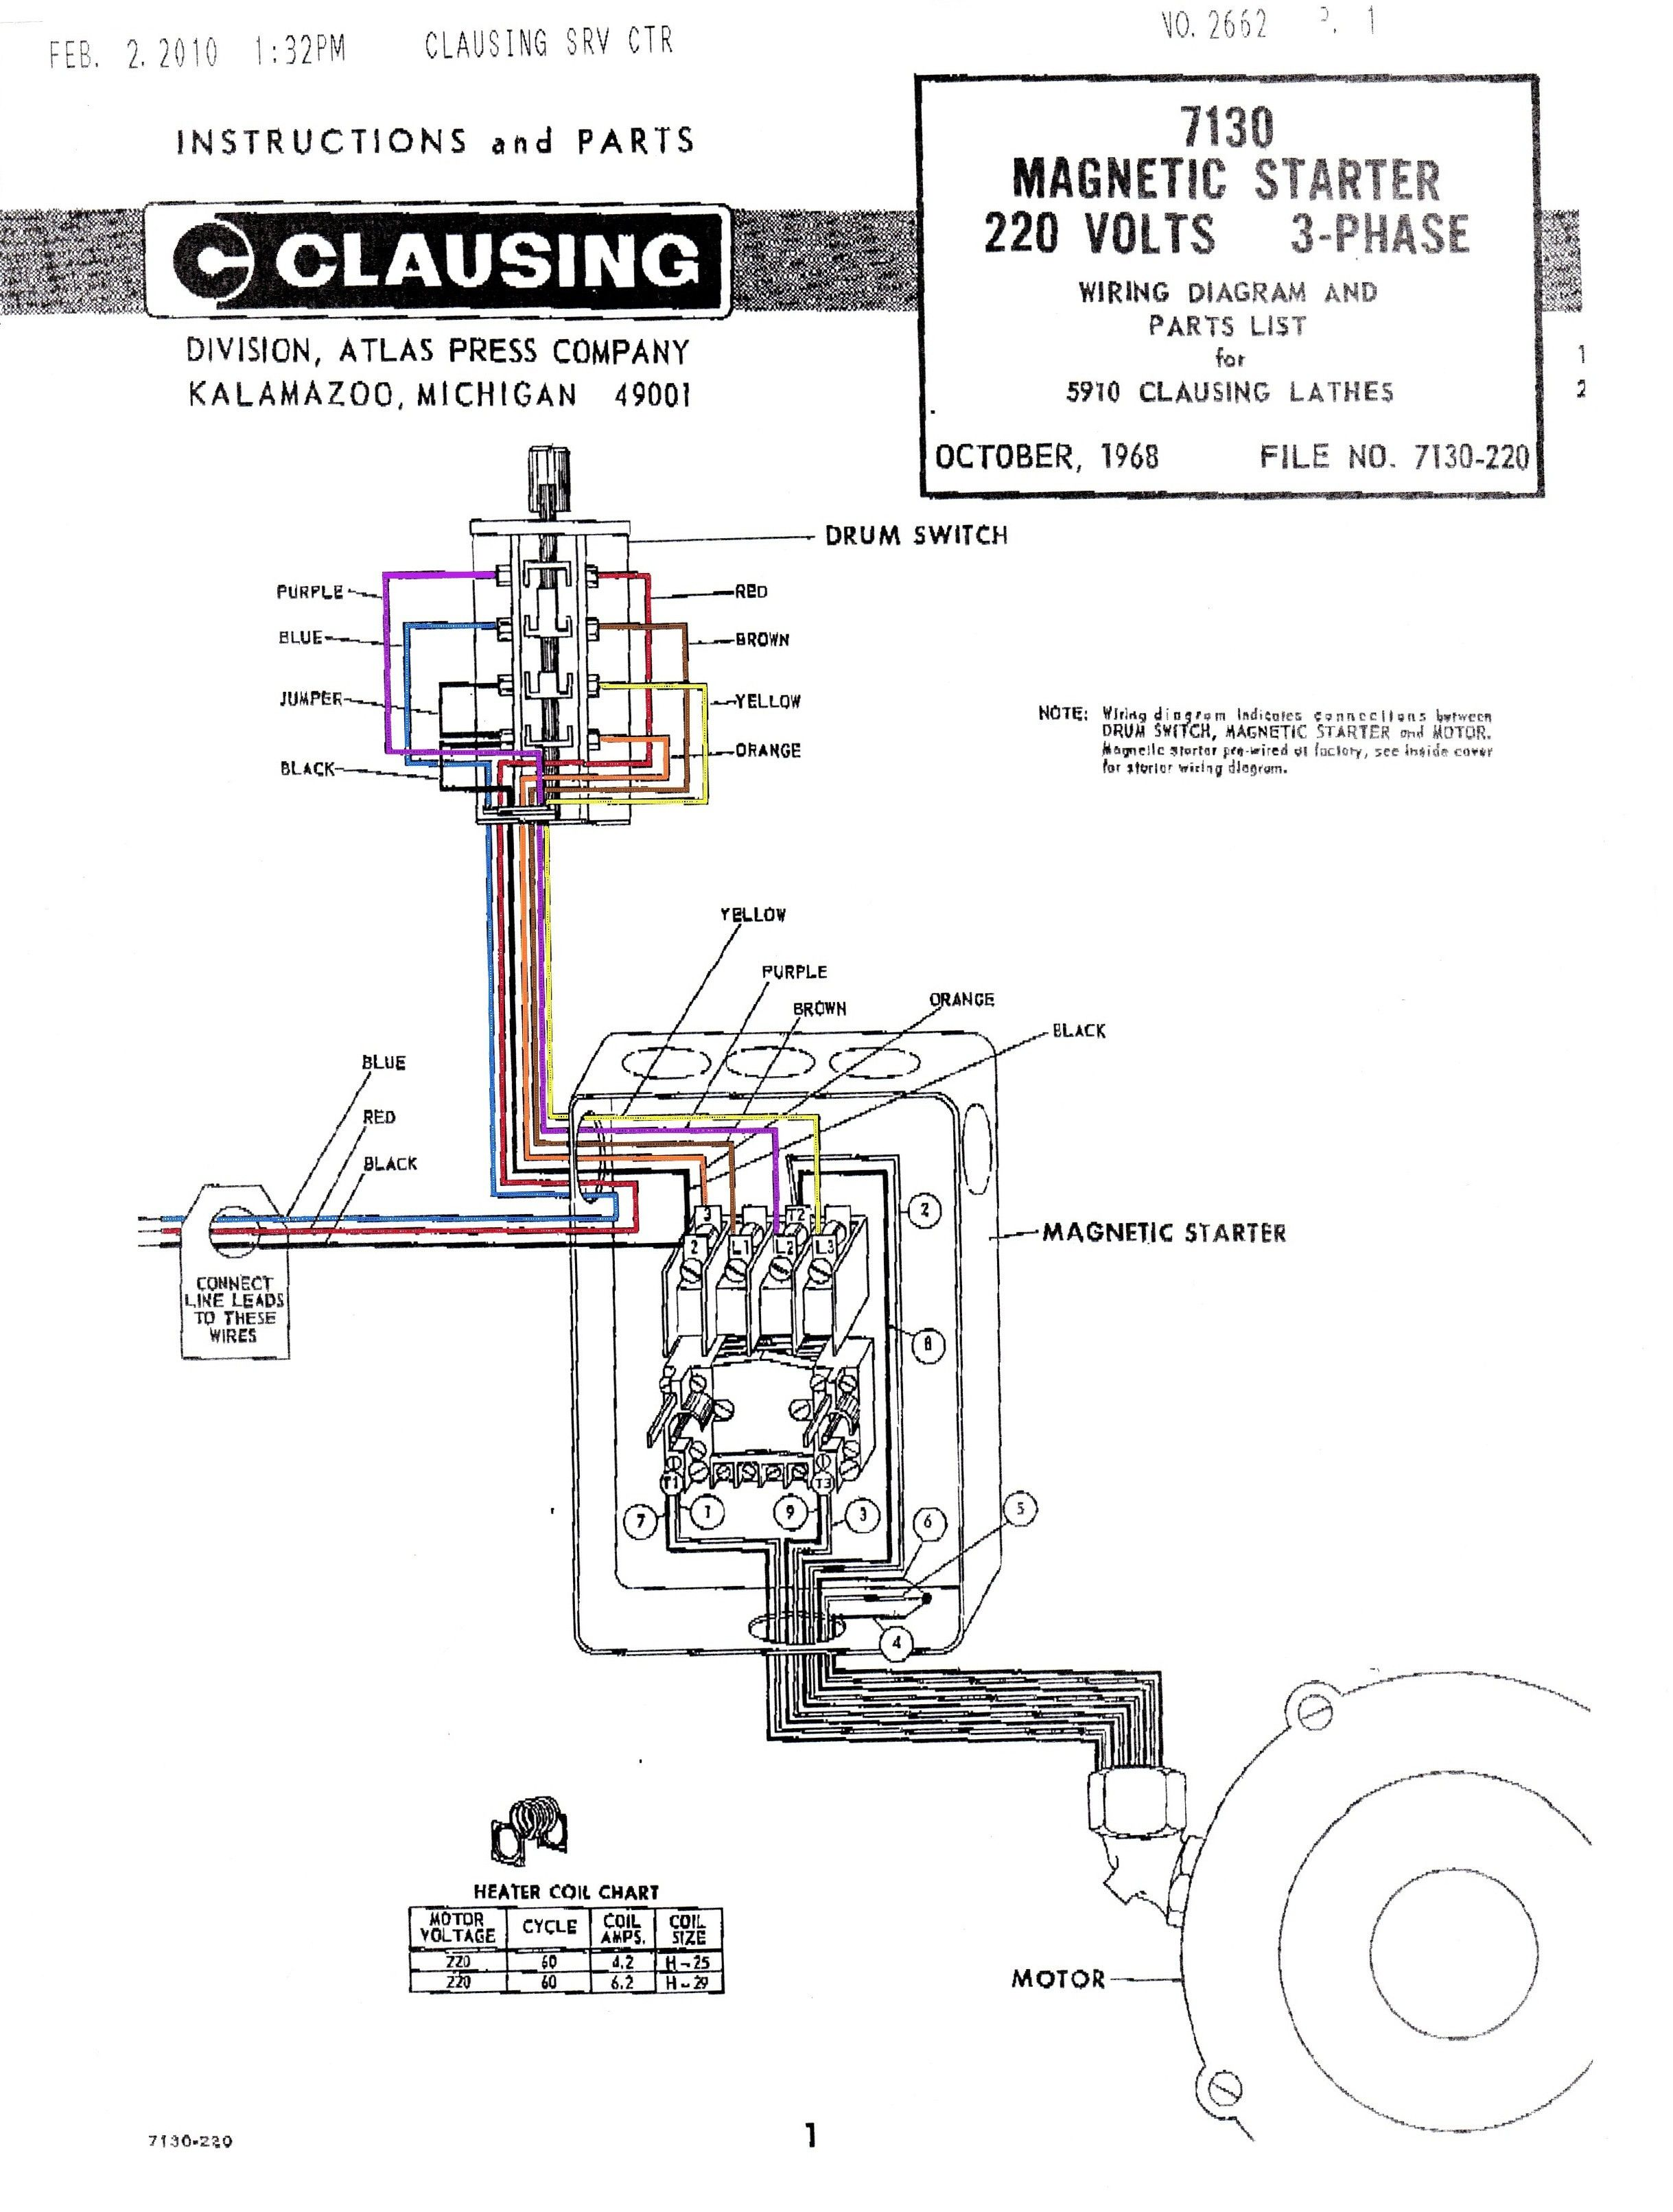 25 Good Sample Of Motor Control Panel Wiring Diagram Technique